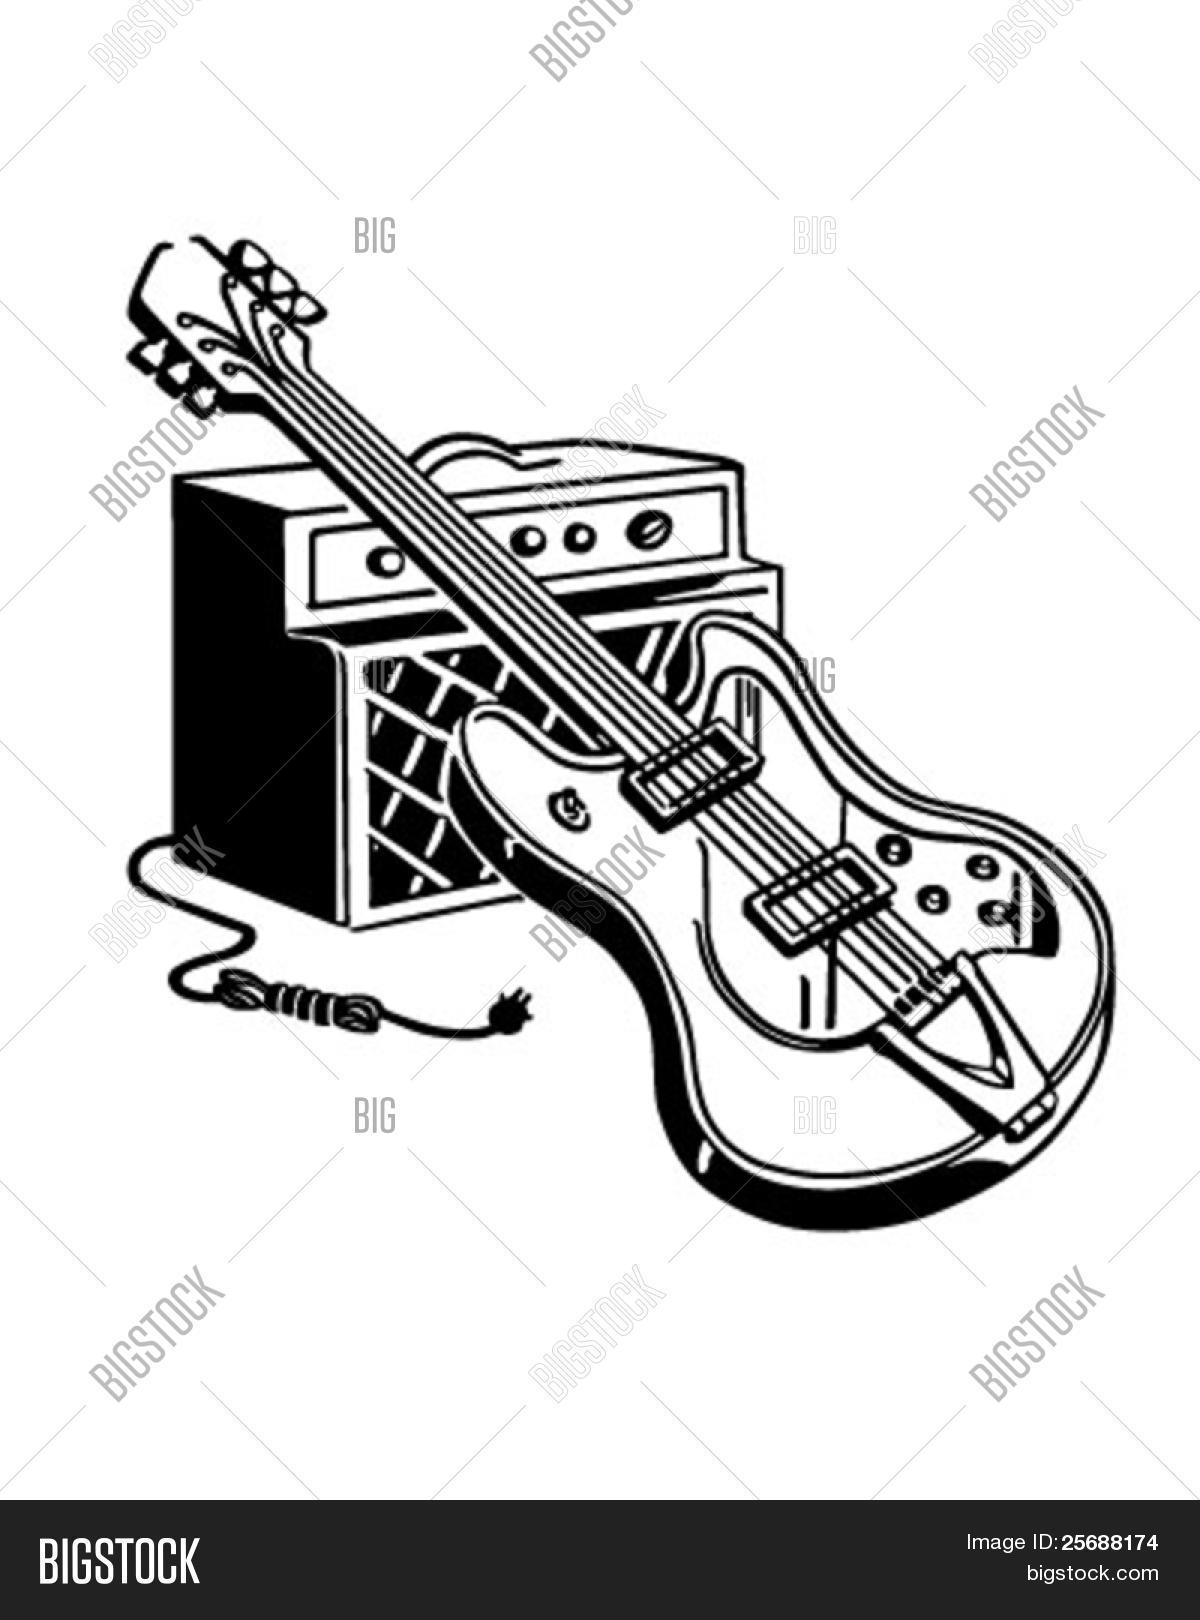 Amps Clipart Clipground